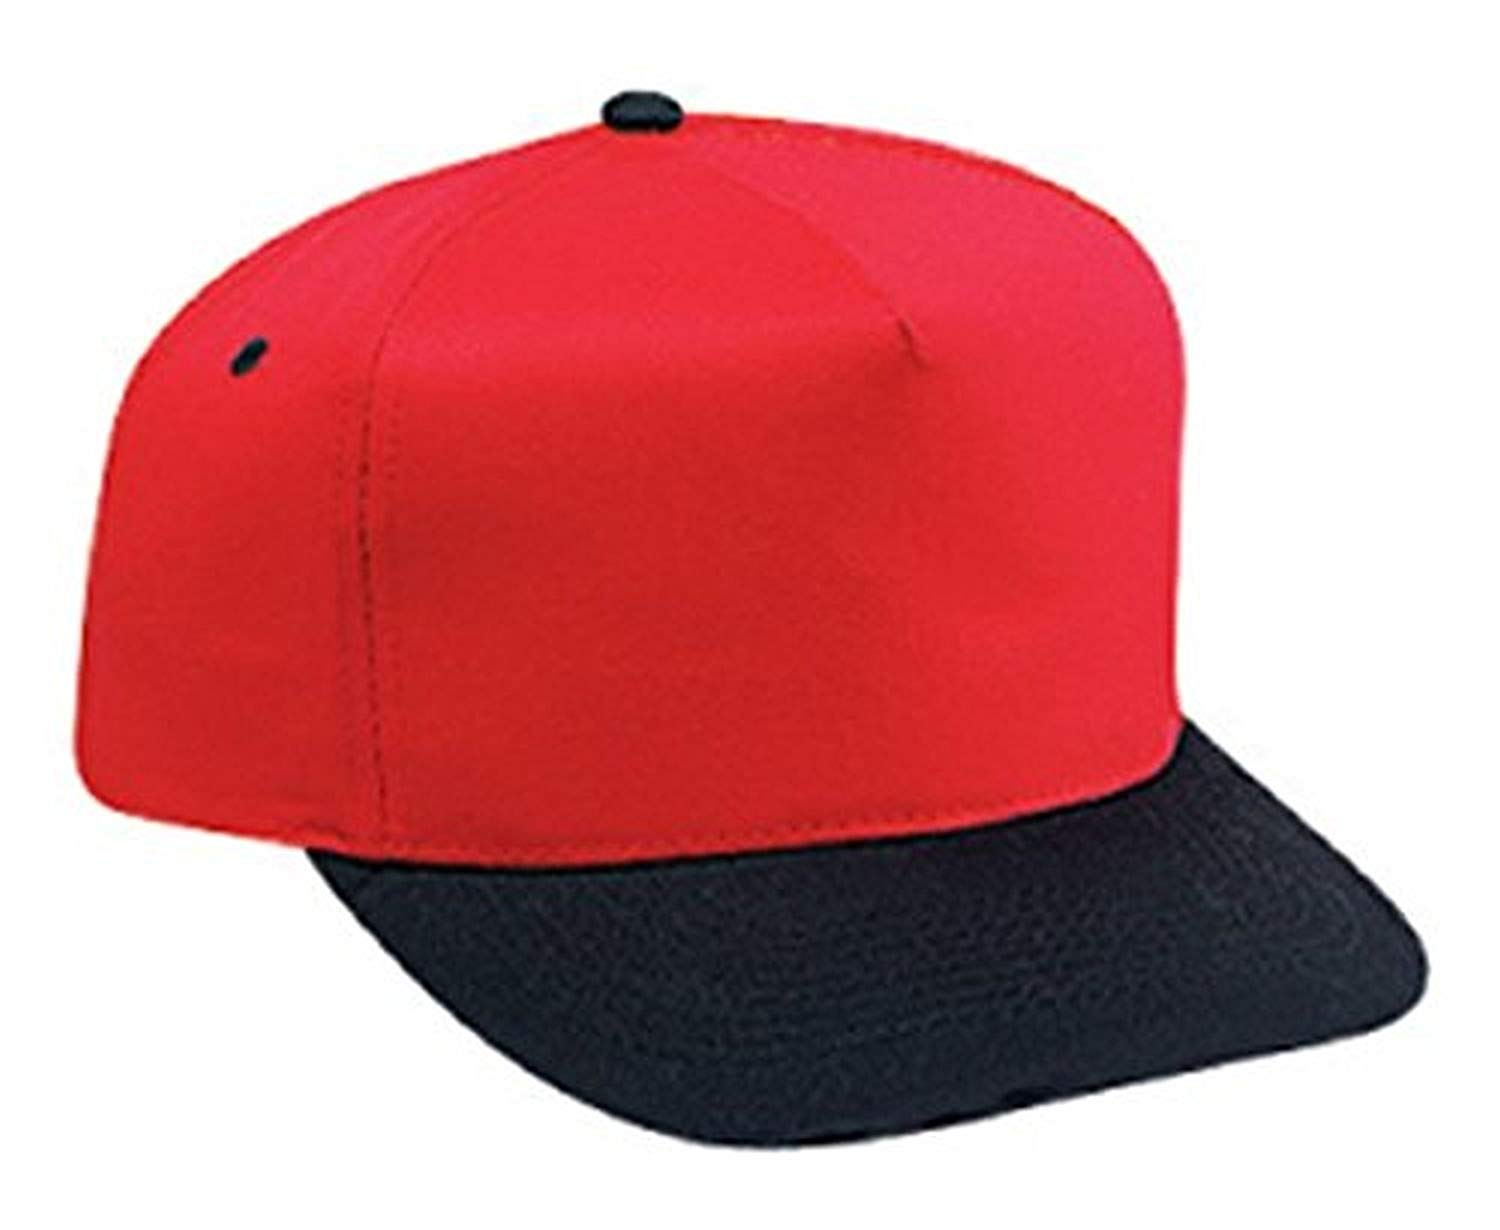 bd421ecc Get Quotations · Hats & Caps Shop Cn Twill Five Panel Pro Style Cap - By  TheTargetBuys